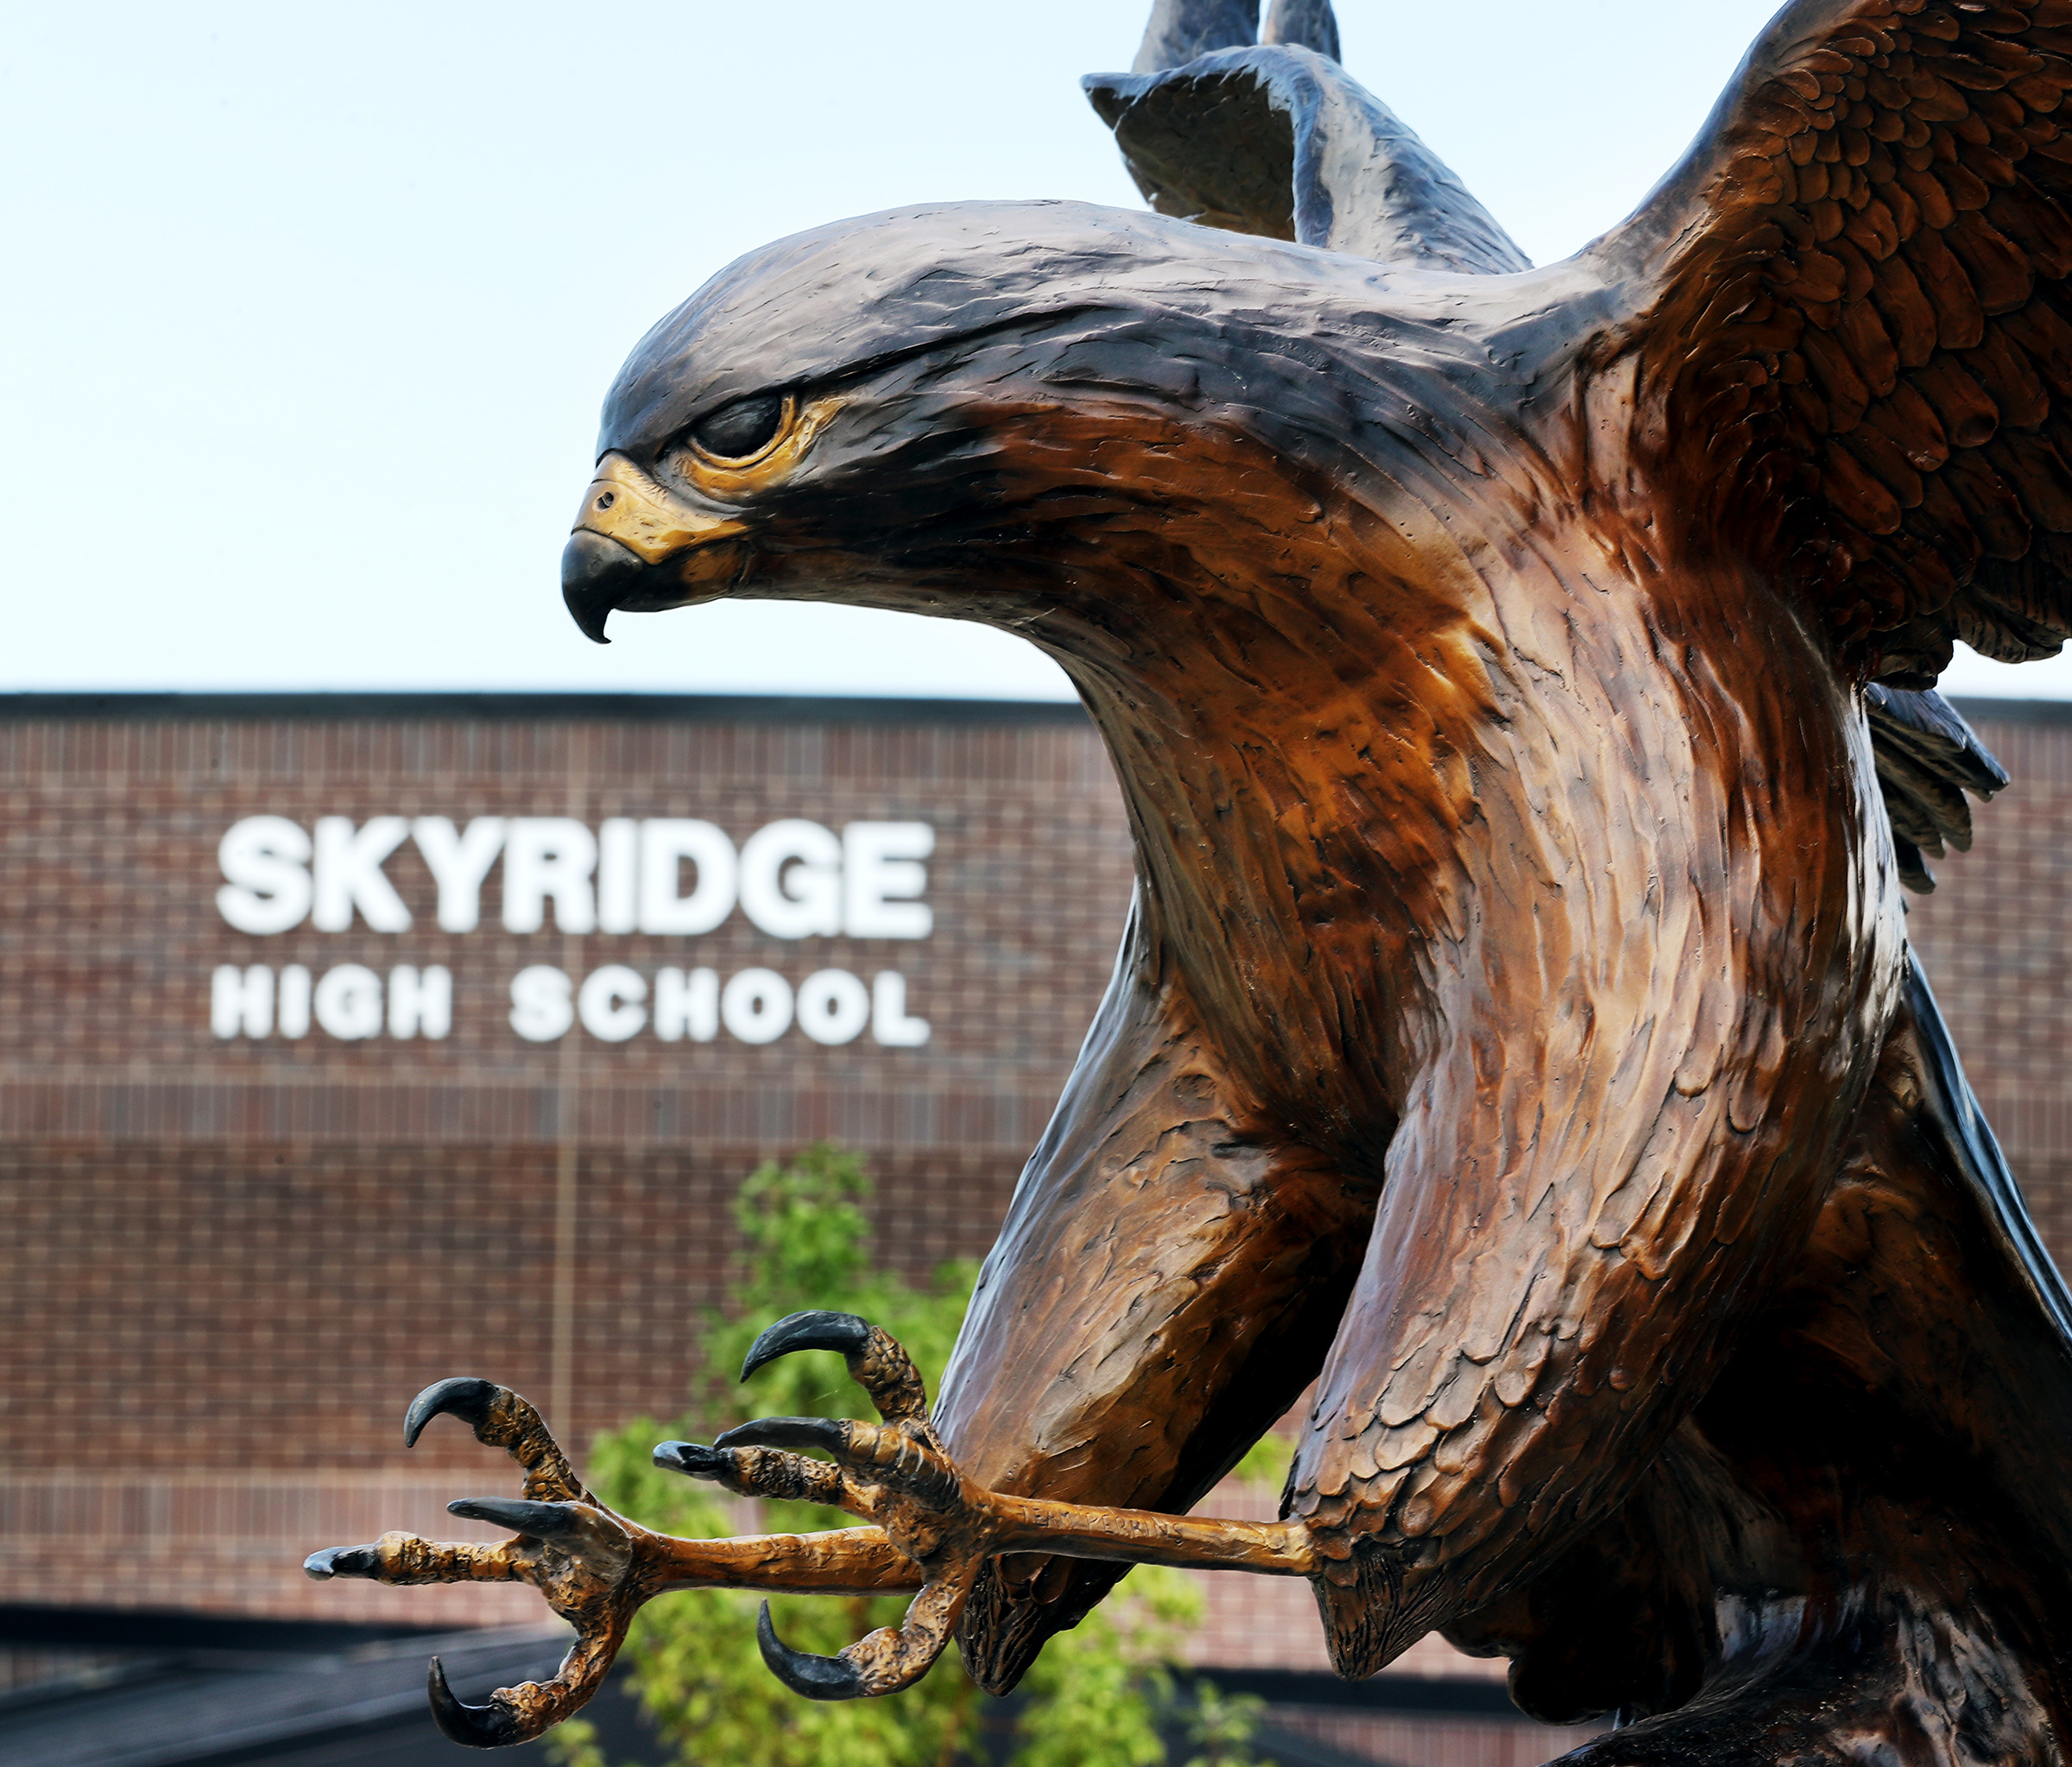 Skyridge High School in Lehi is pictured on Wednesday, Aug. 19, 2020.